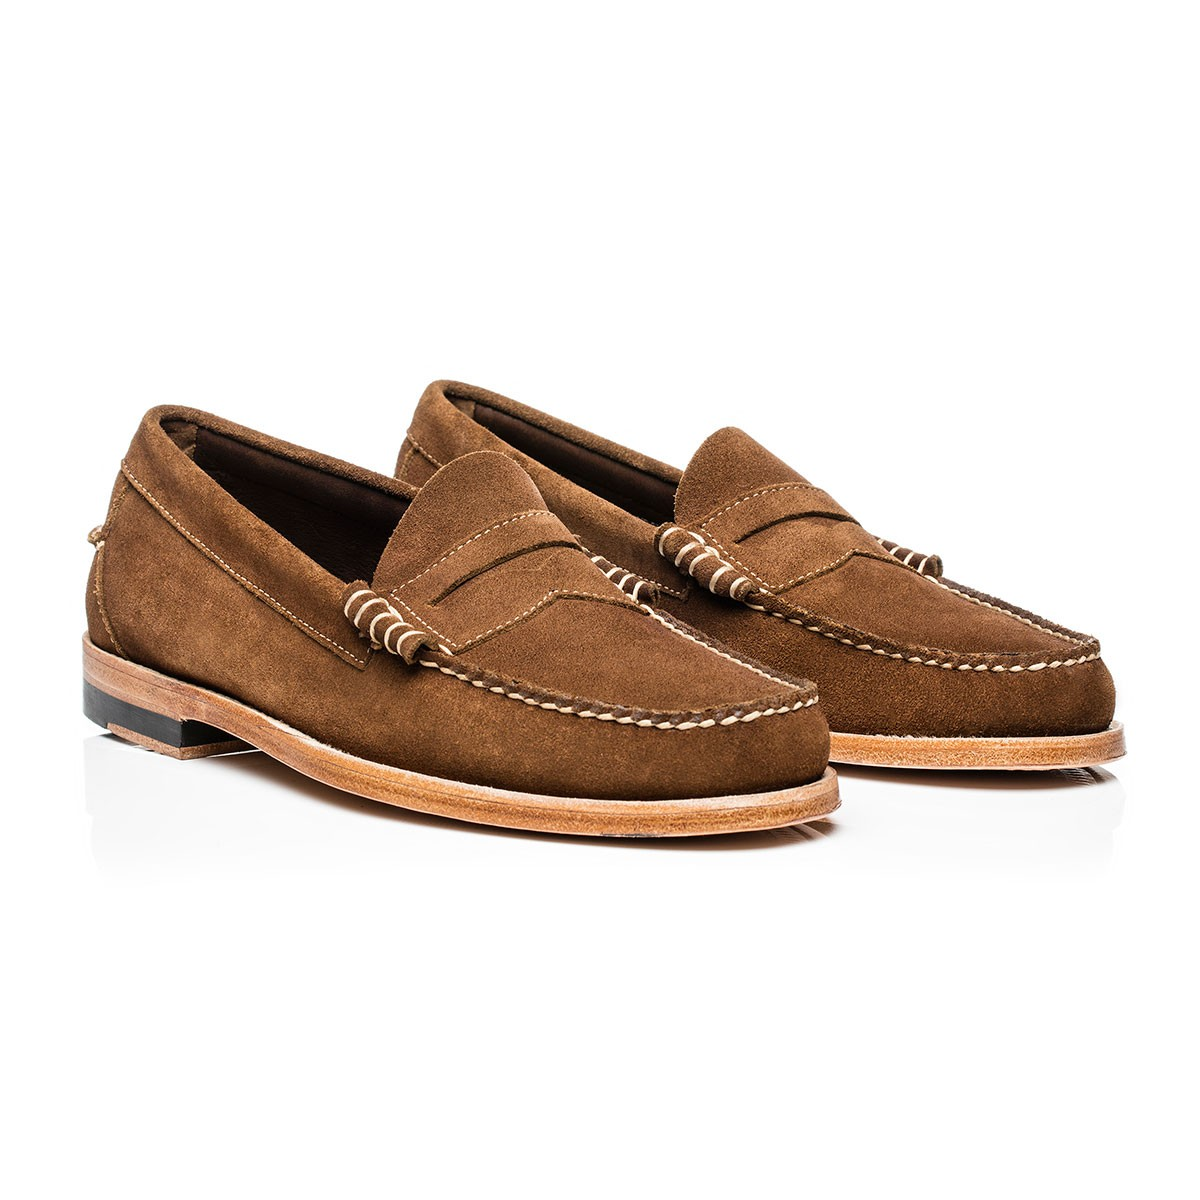 G.H. Bass & Co. Mid Brown Suede Weejuns Larson Stead Suede Mid Brown